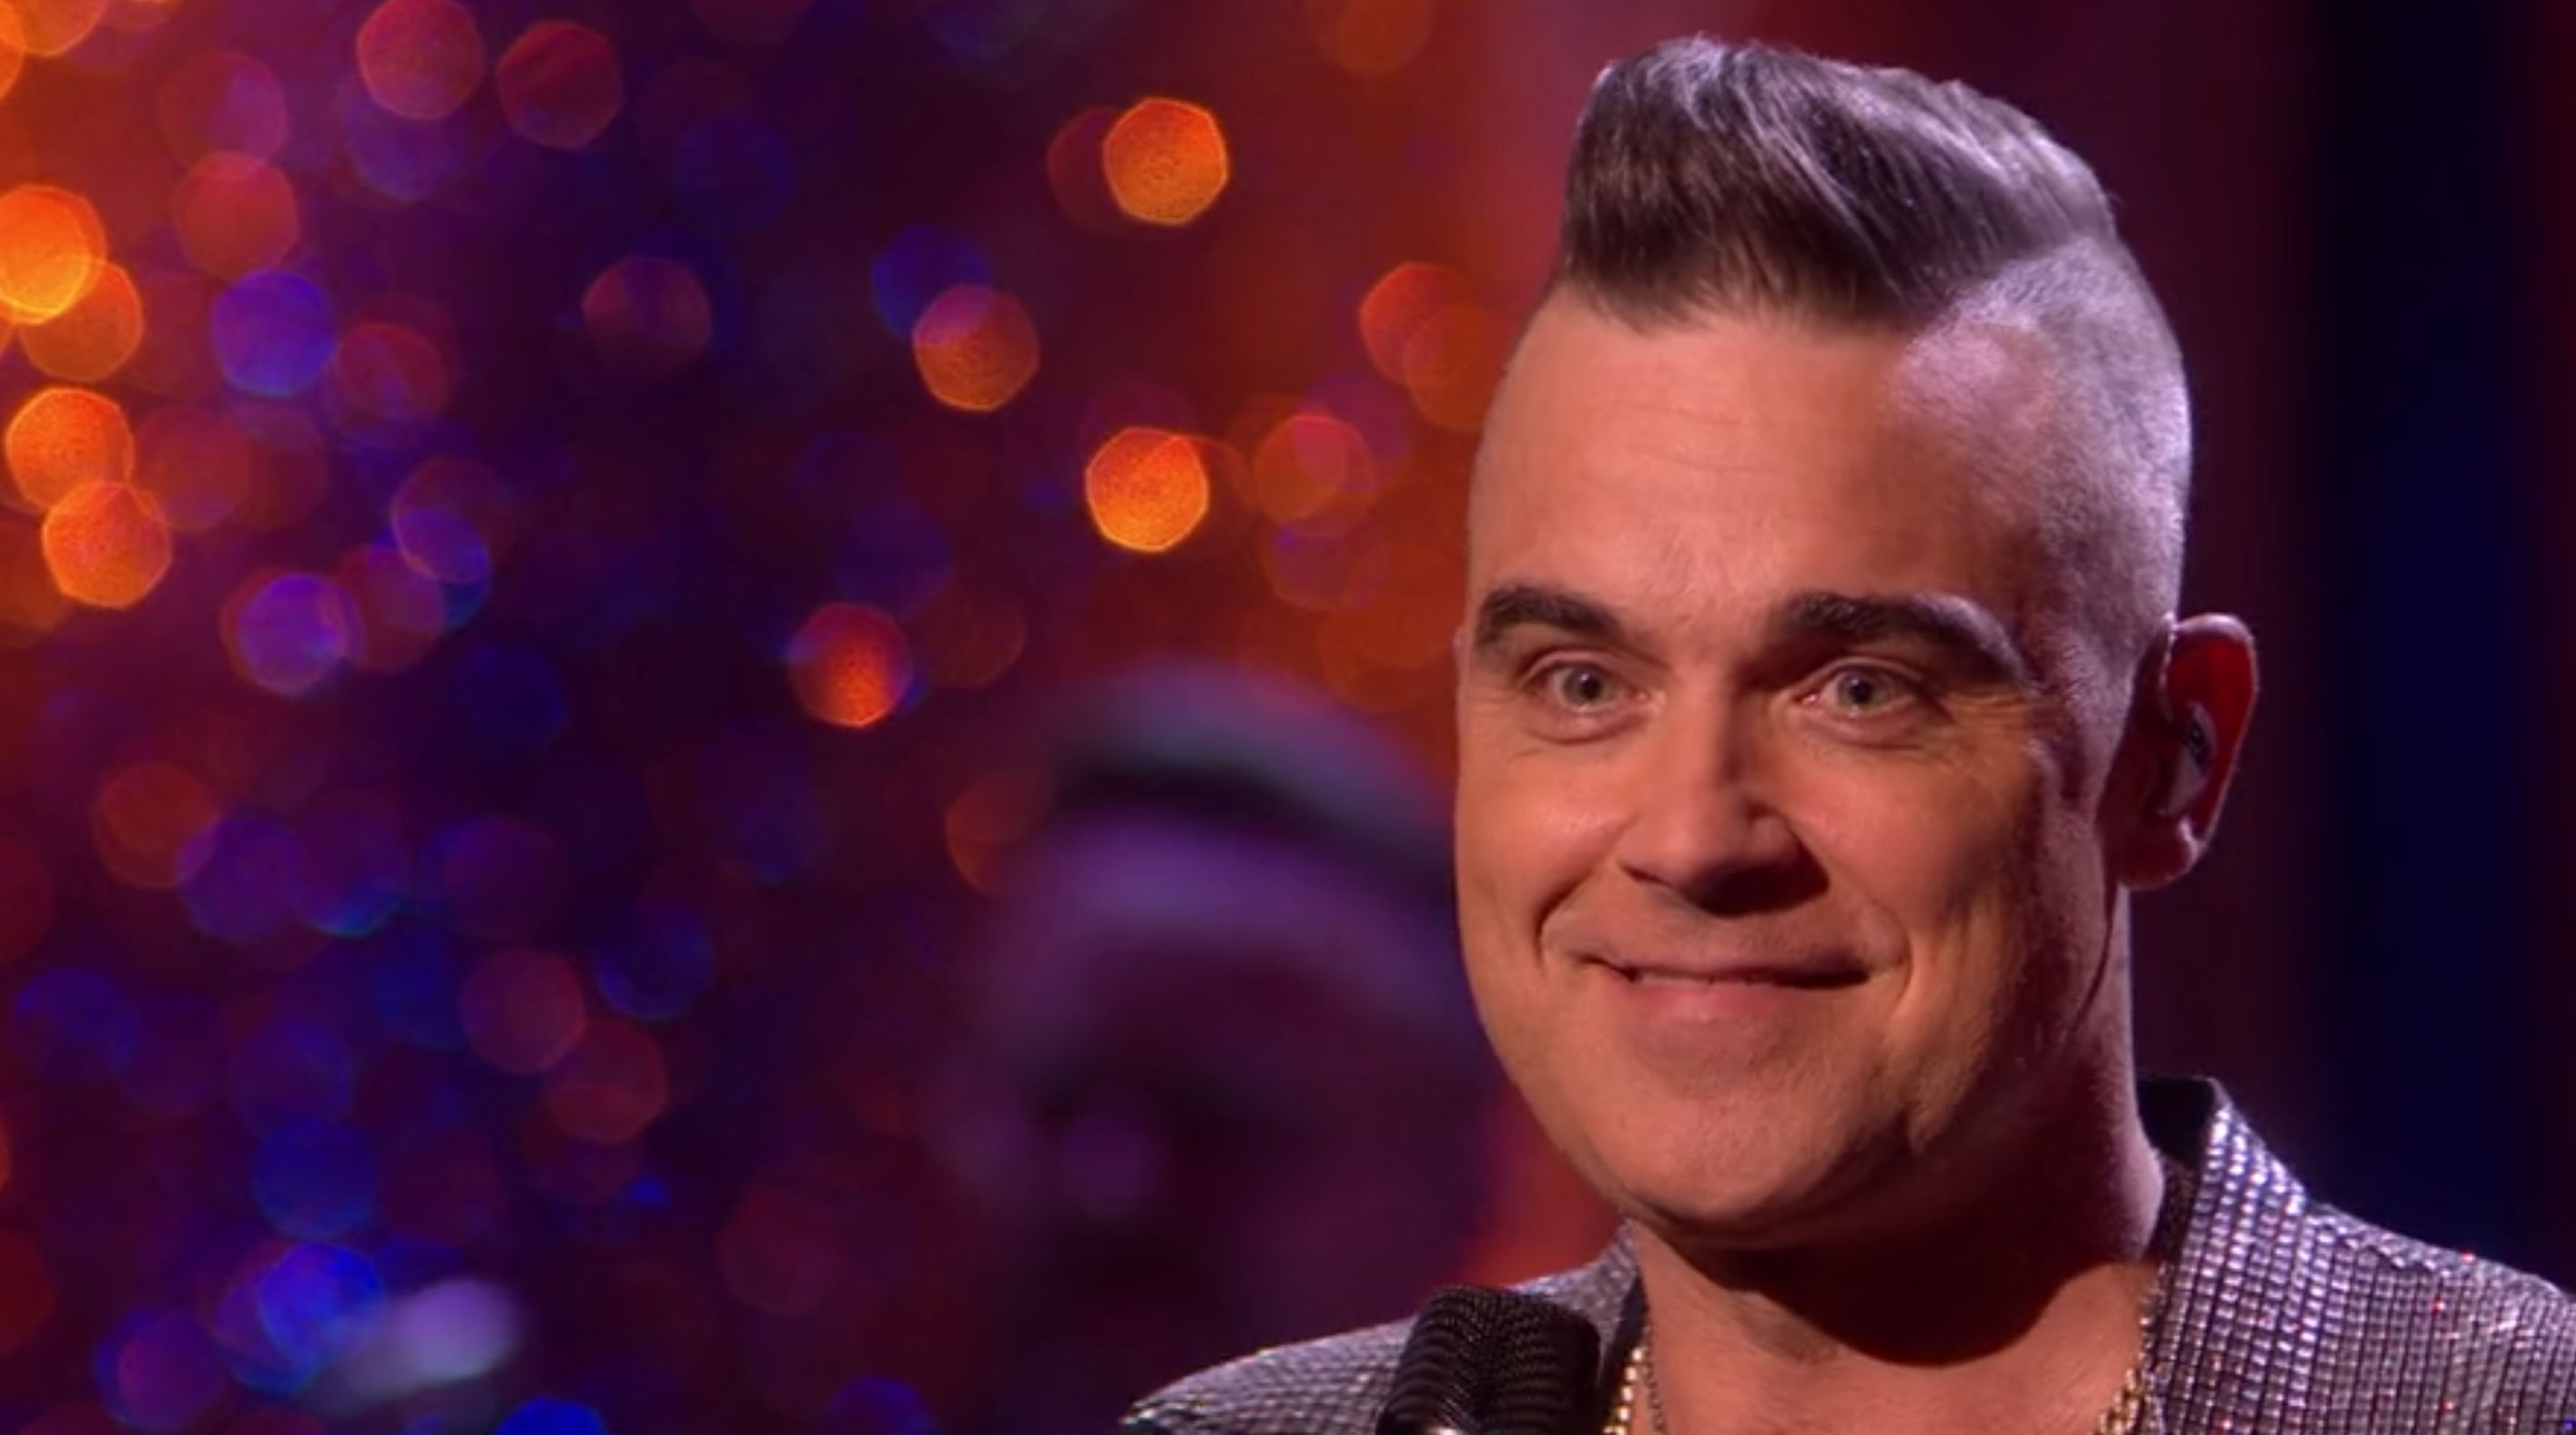 Robbie Williams teases he'd be up for I'm A Celebrity next year